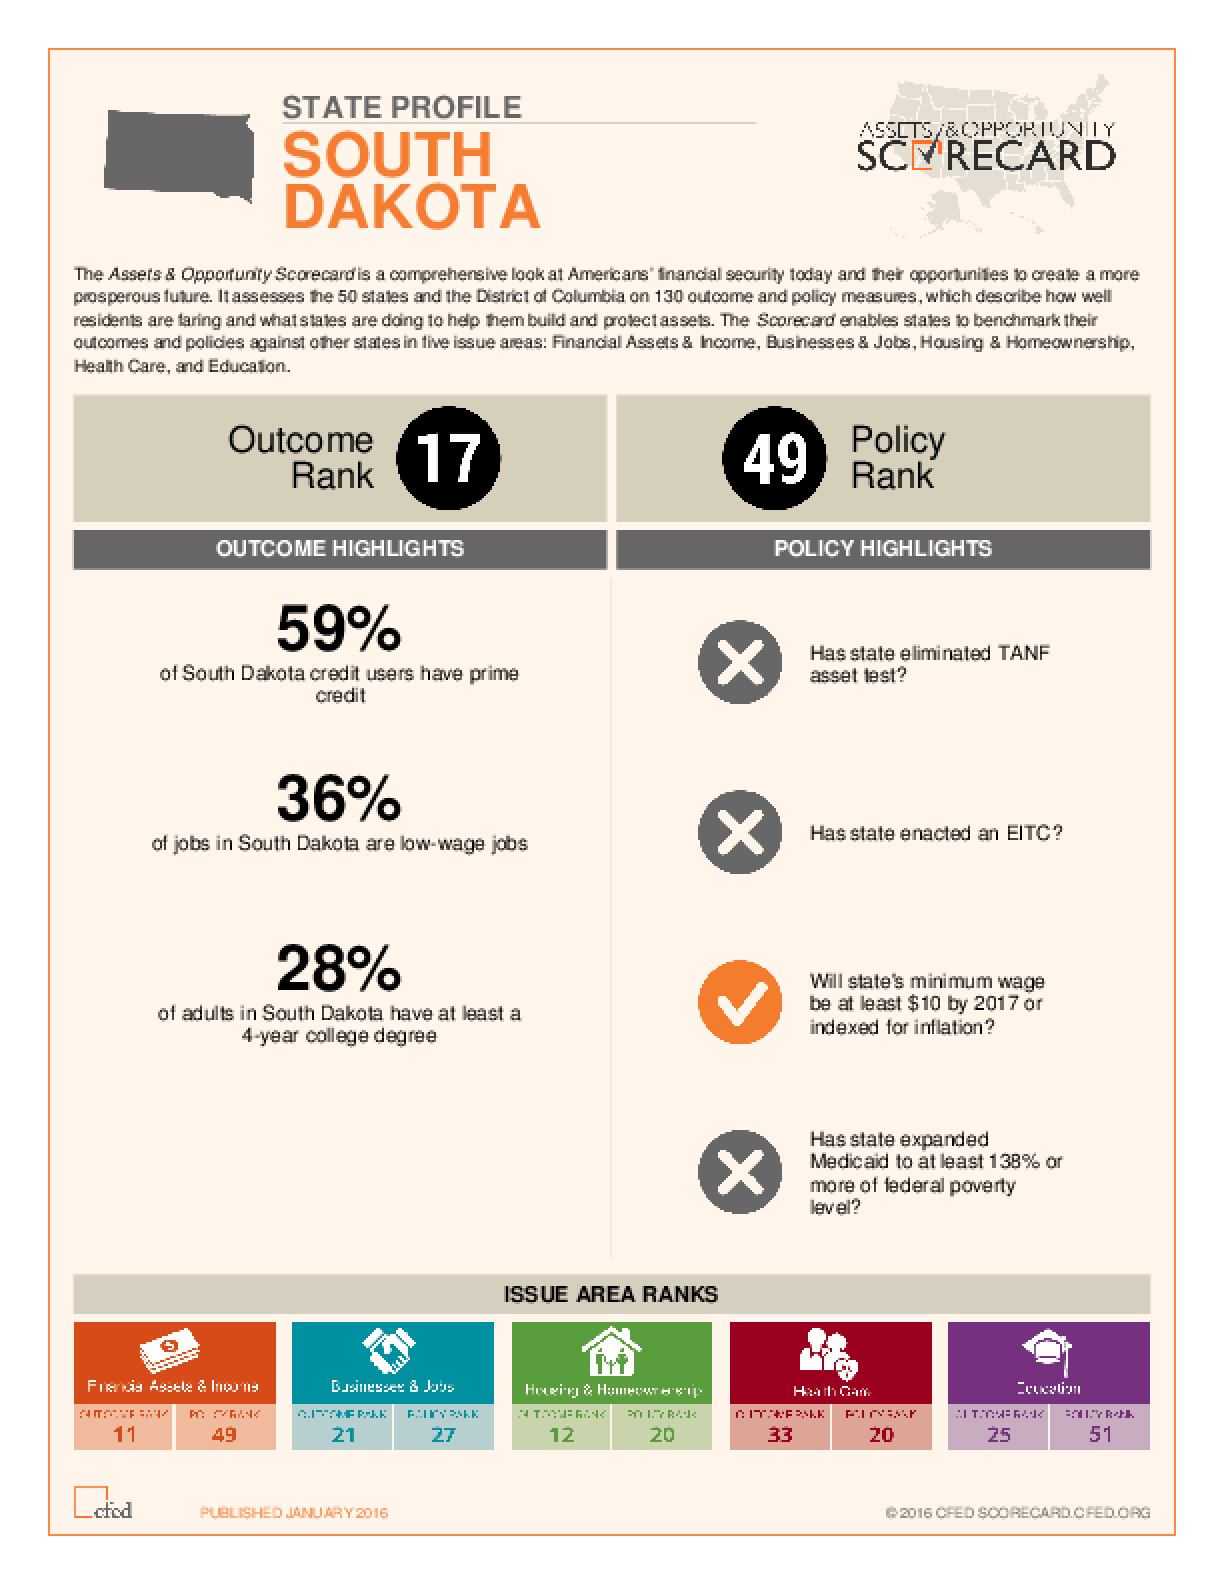 State Profile South Dakota: Assets and Opportunity Scorecard